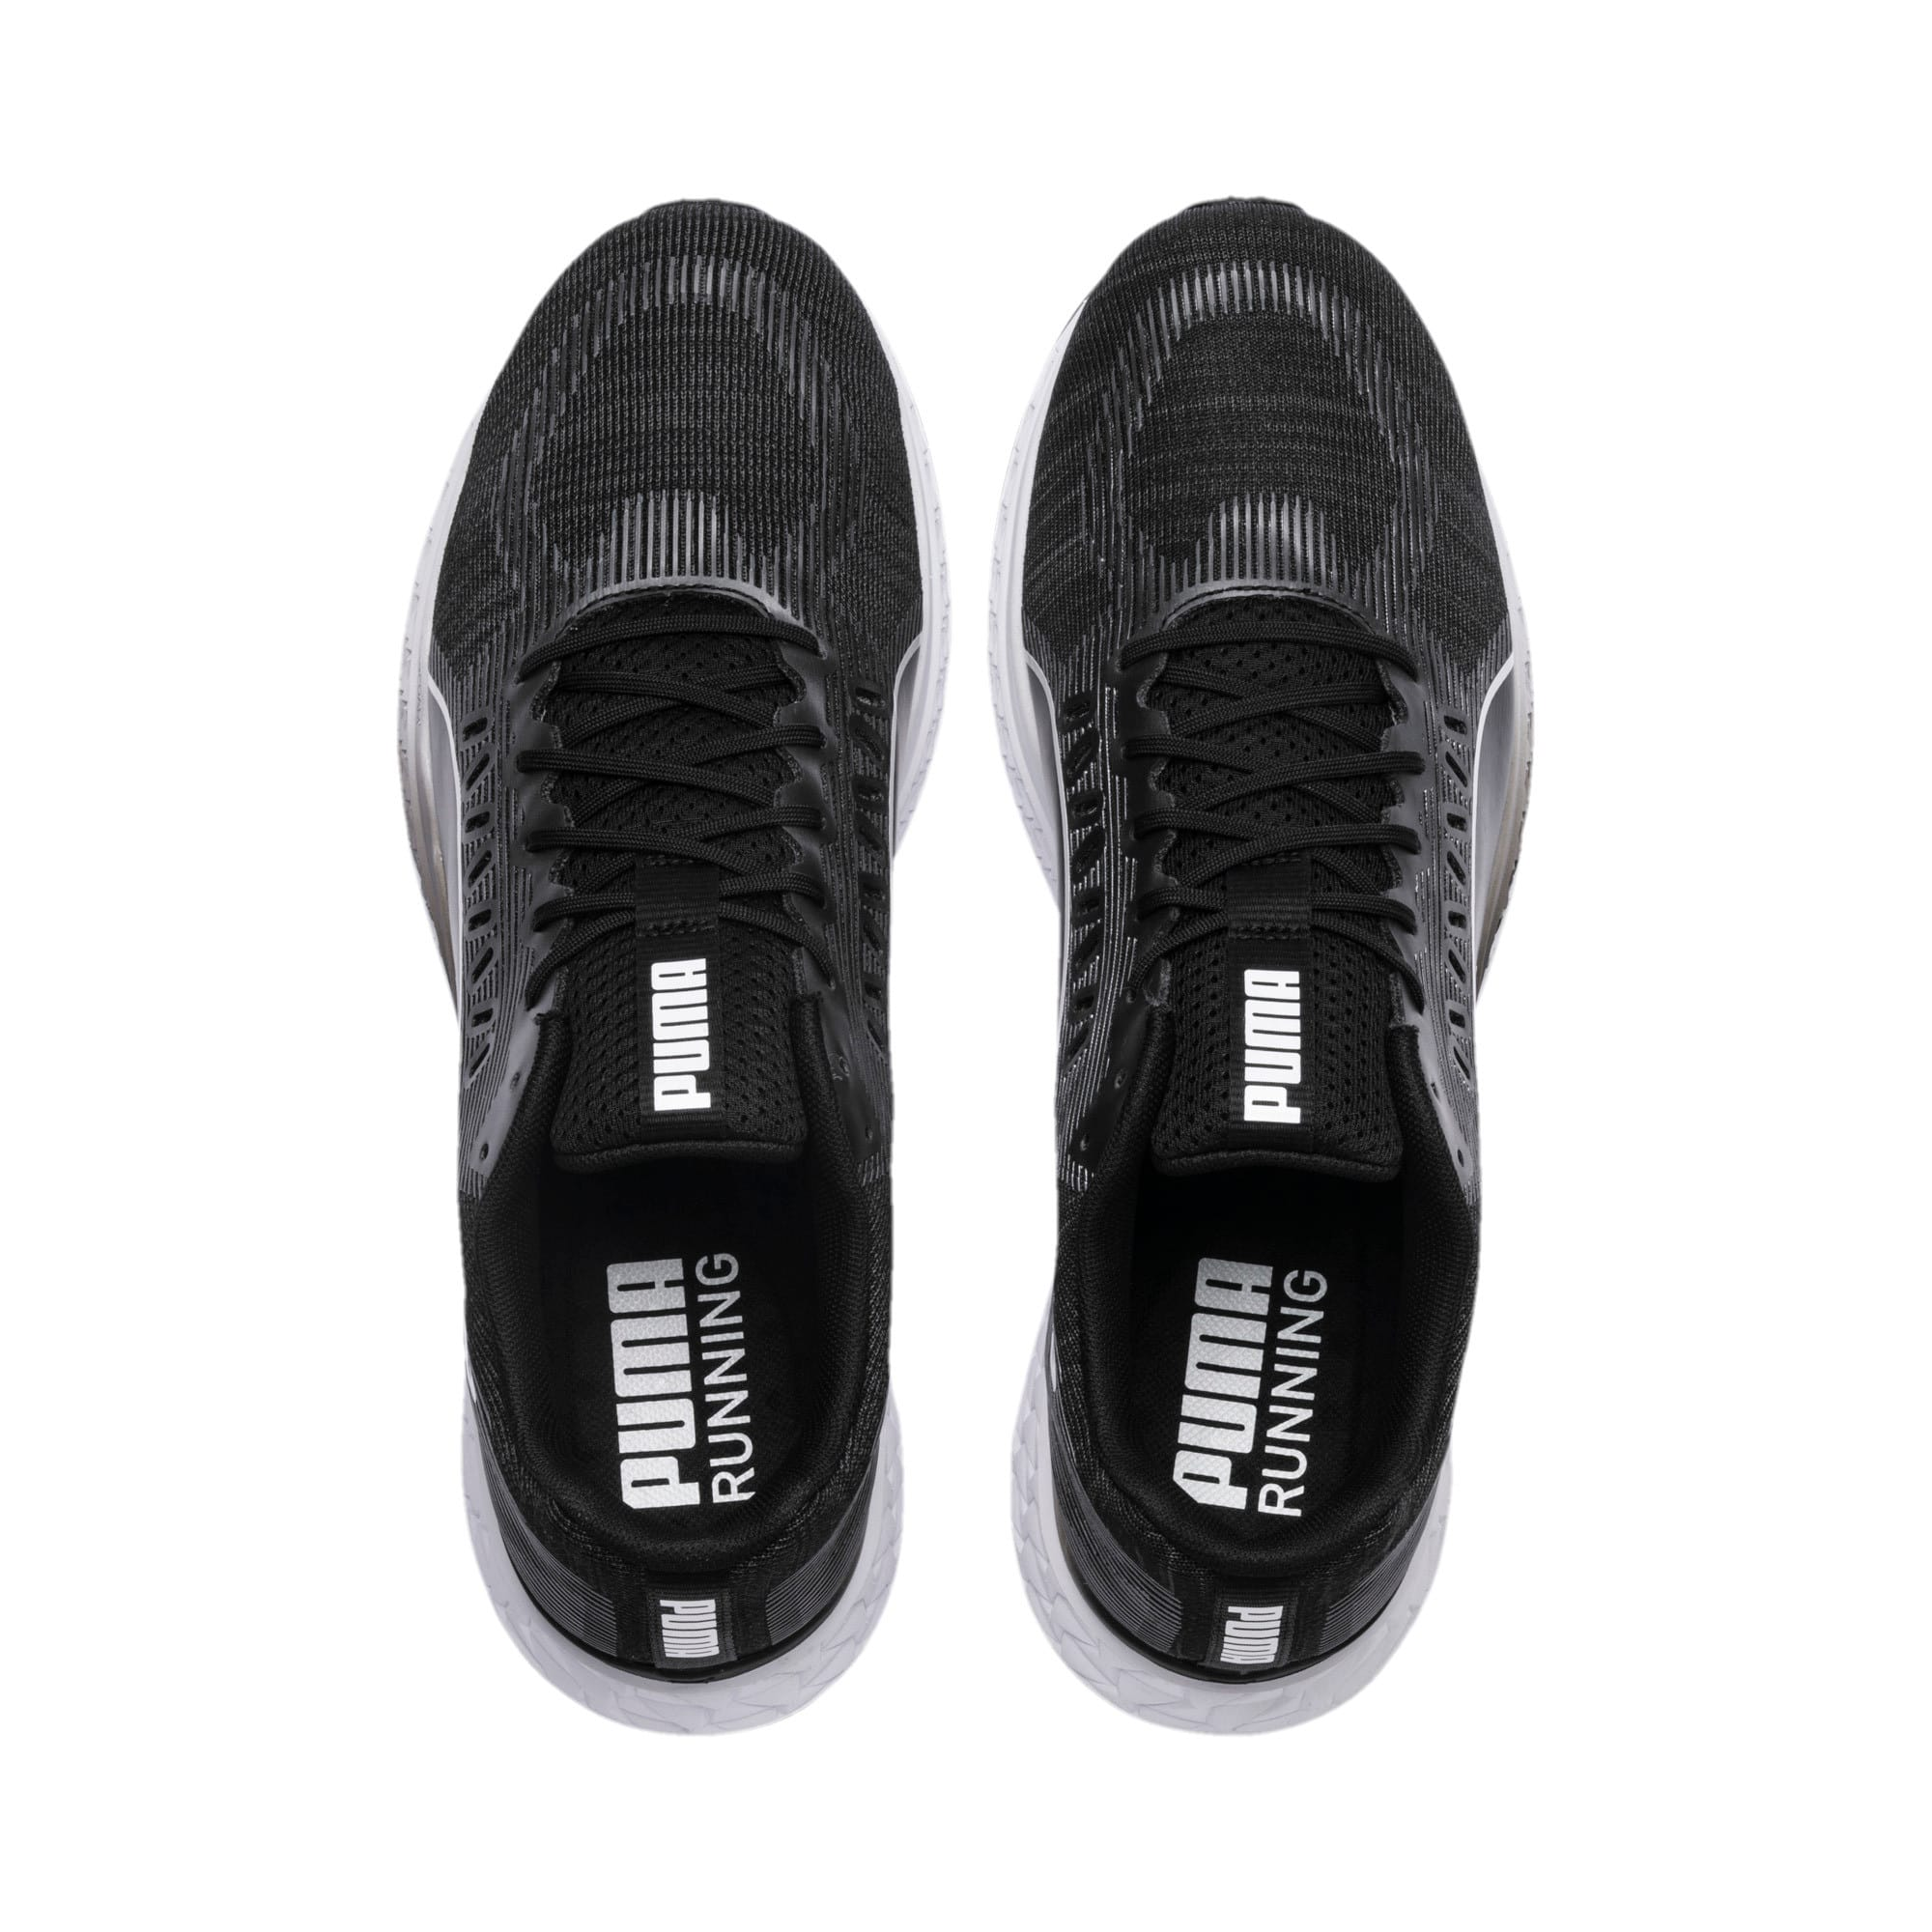 Thumbnail 6 of SPEED SUTAMINA Running Shoes, Puma Black-Puma White, medium